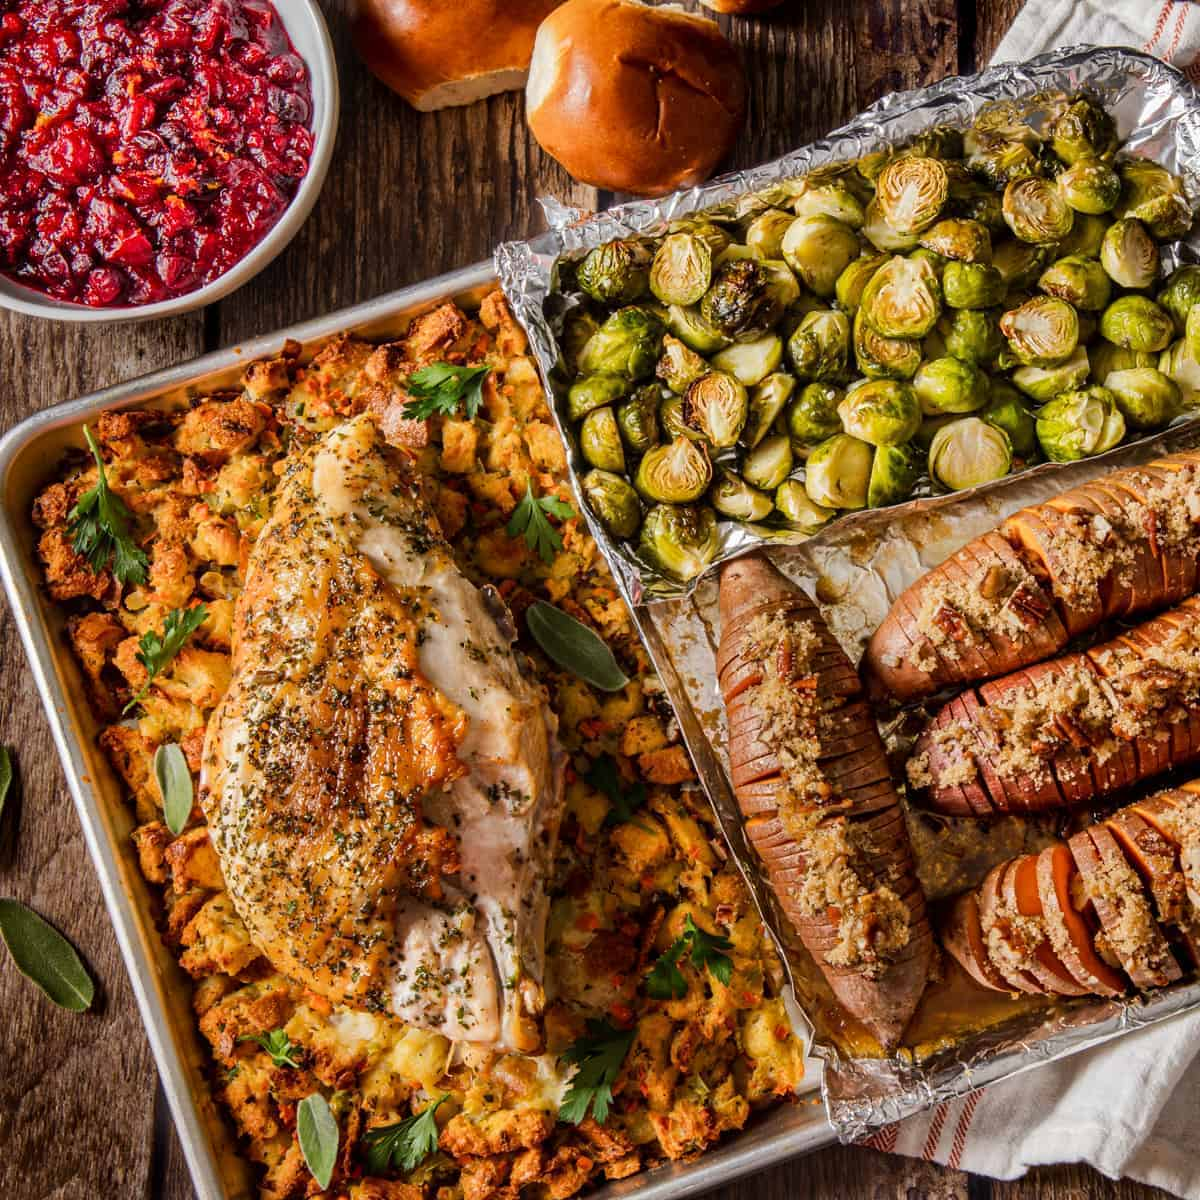 Overhead view of a table set with a sheet pan of roasted turey and stuffing with vegetables accompanied by a bowl of cranberry sauce and rolls.